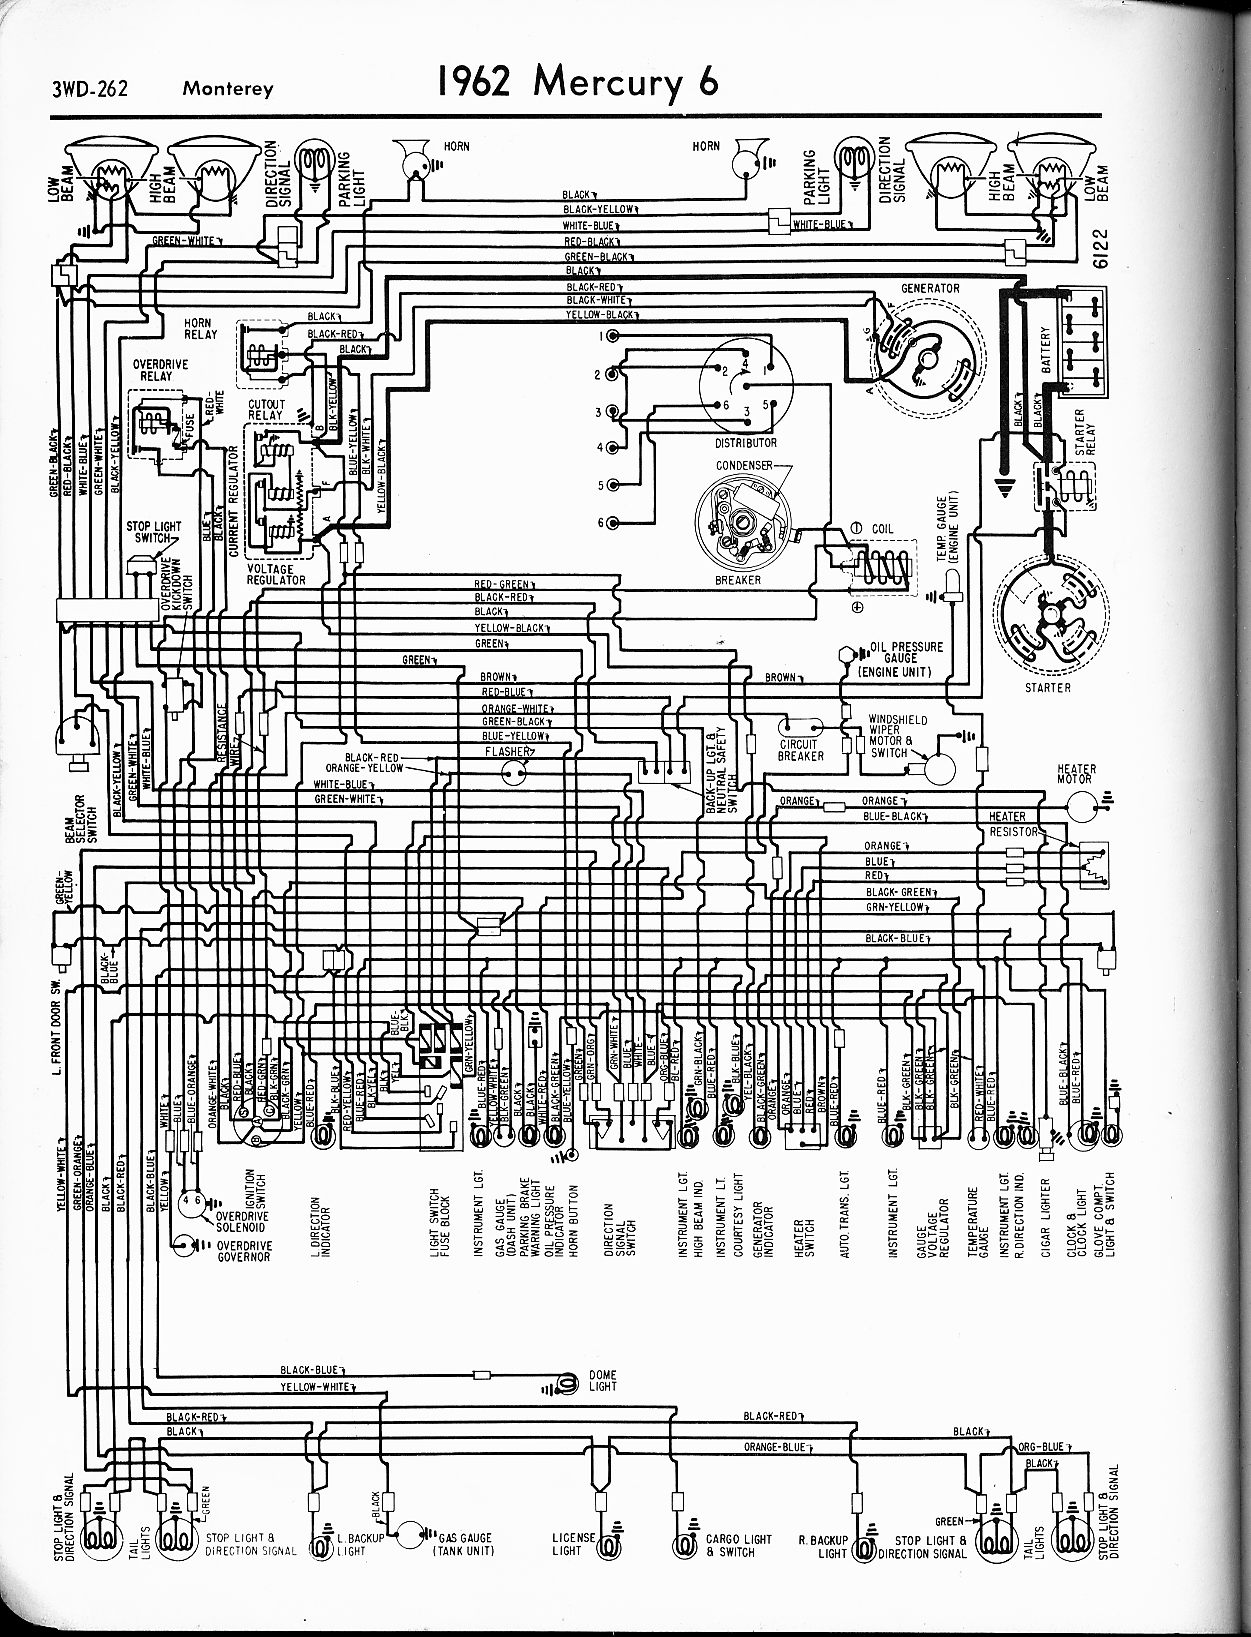 MWire5765 262 mercury wiring diagrams the old car manual project old car manual project wiring diagrams at soozxer.org